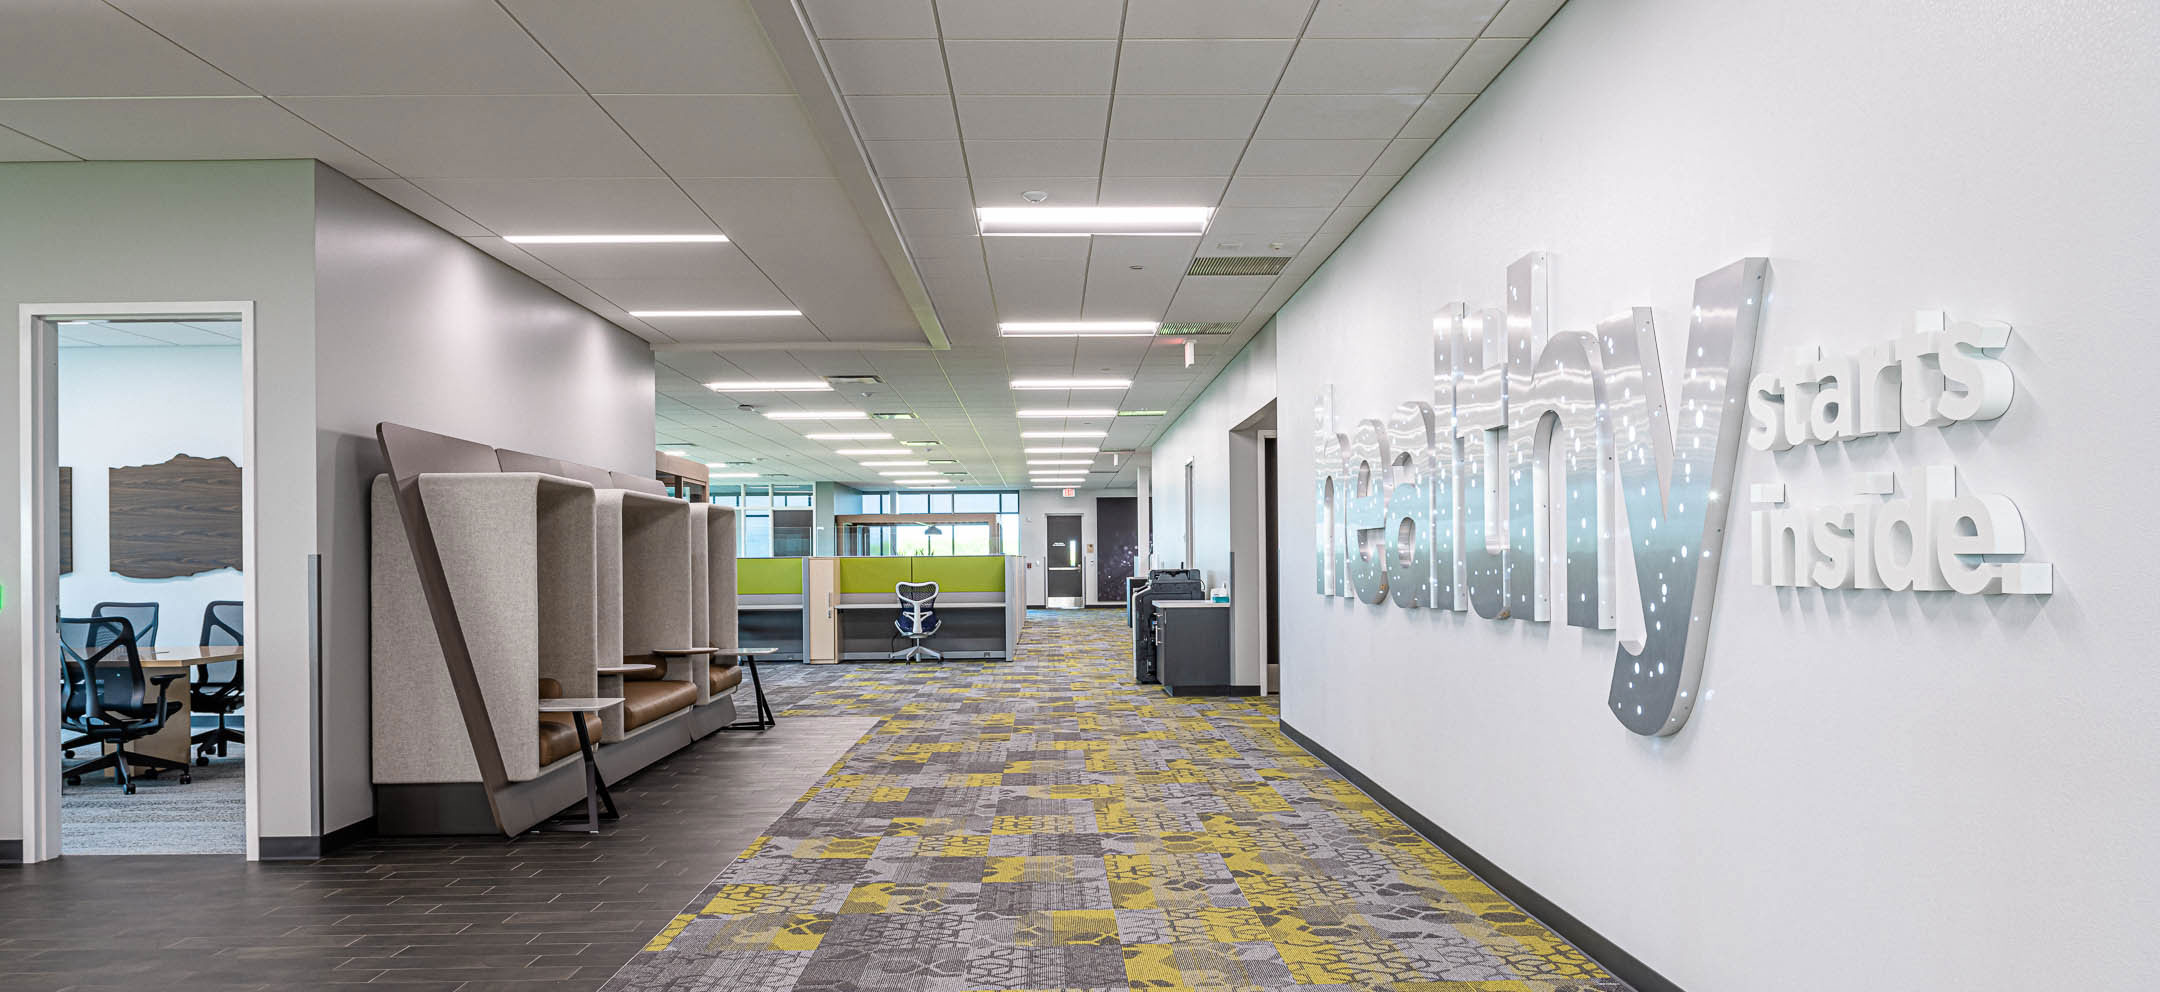 Workspace cubby hallway company culture wall art of Nature's Way new corporate office facility constructed by C.D. Smith Construction firm